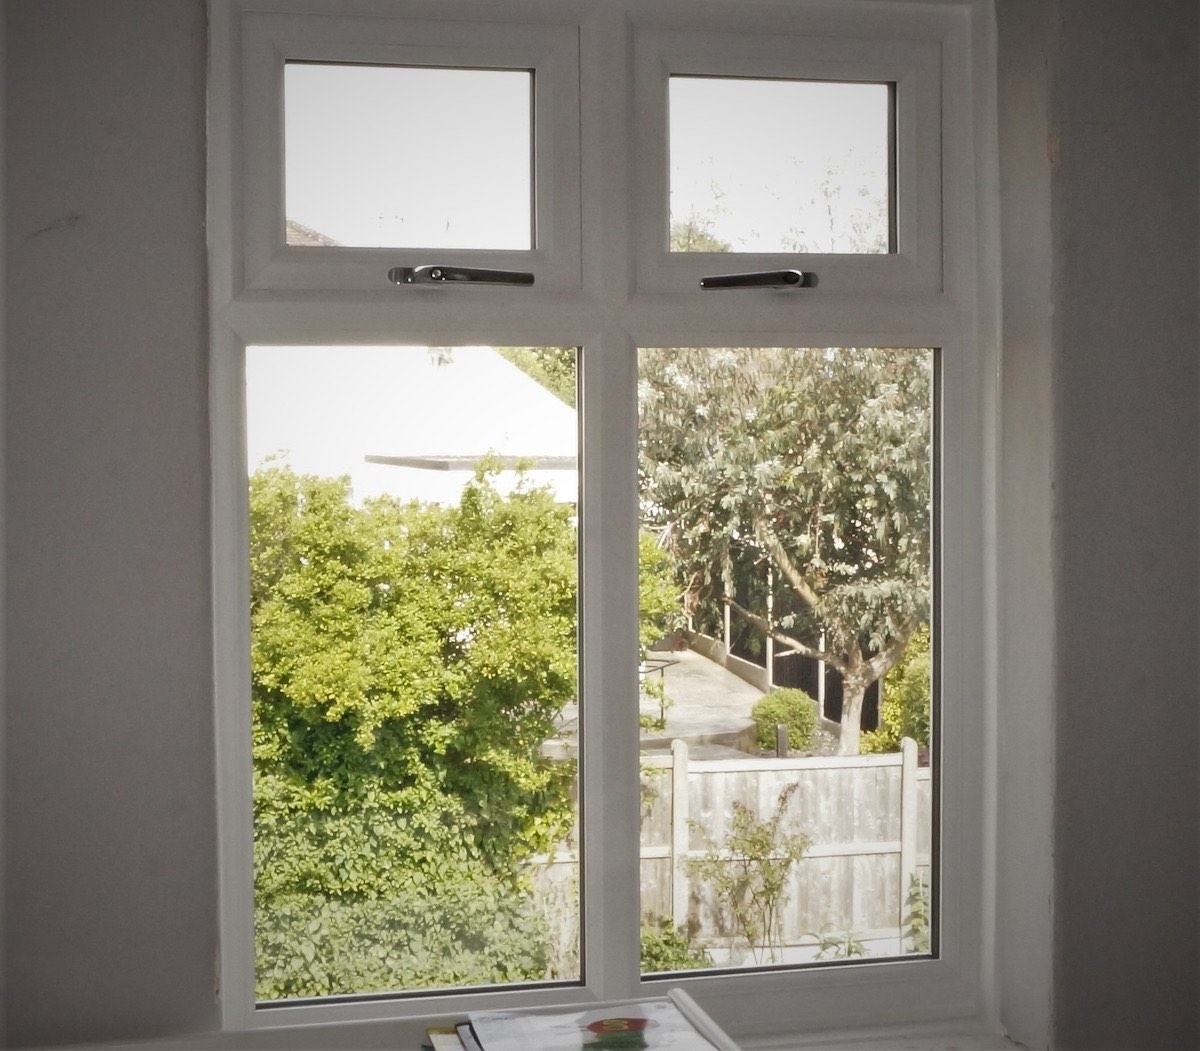 UPVC windows in Tresamble